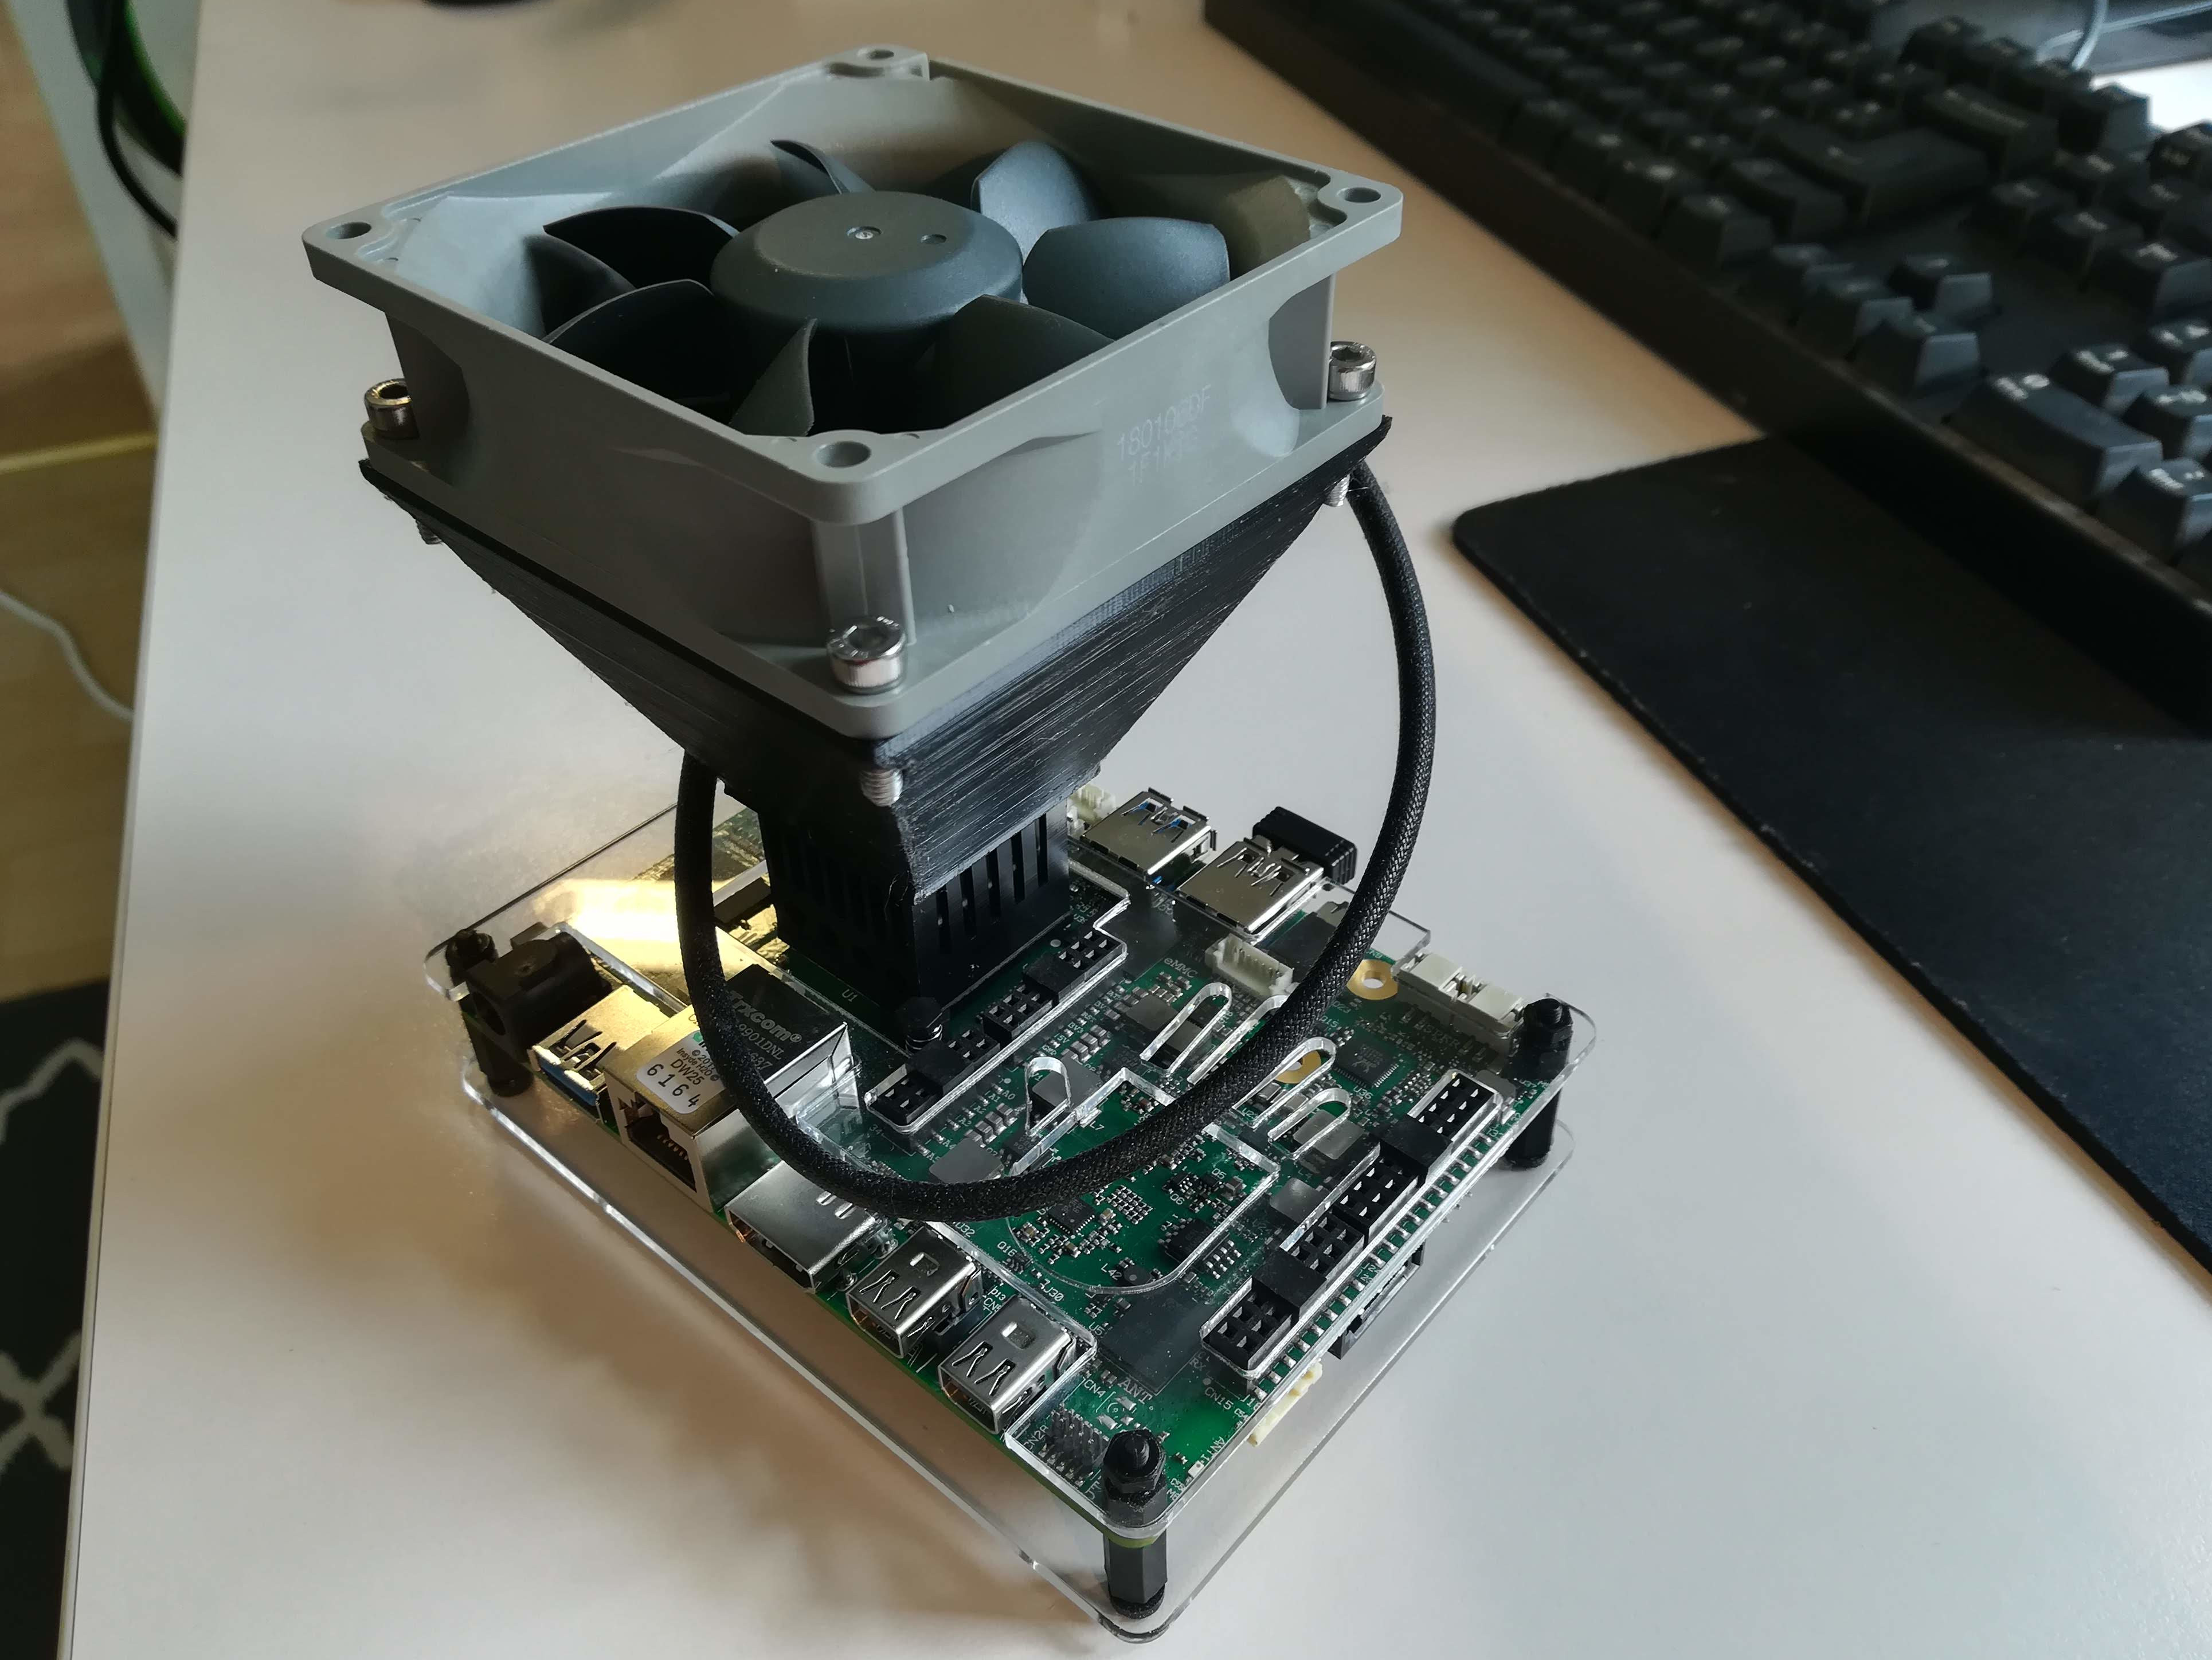 Udoo x86 mount for 80mm fan by postyogi - Thingiverse